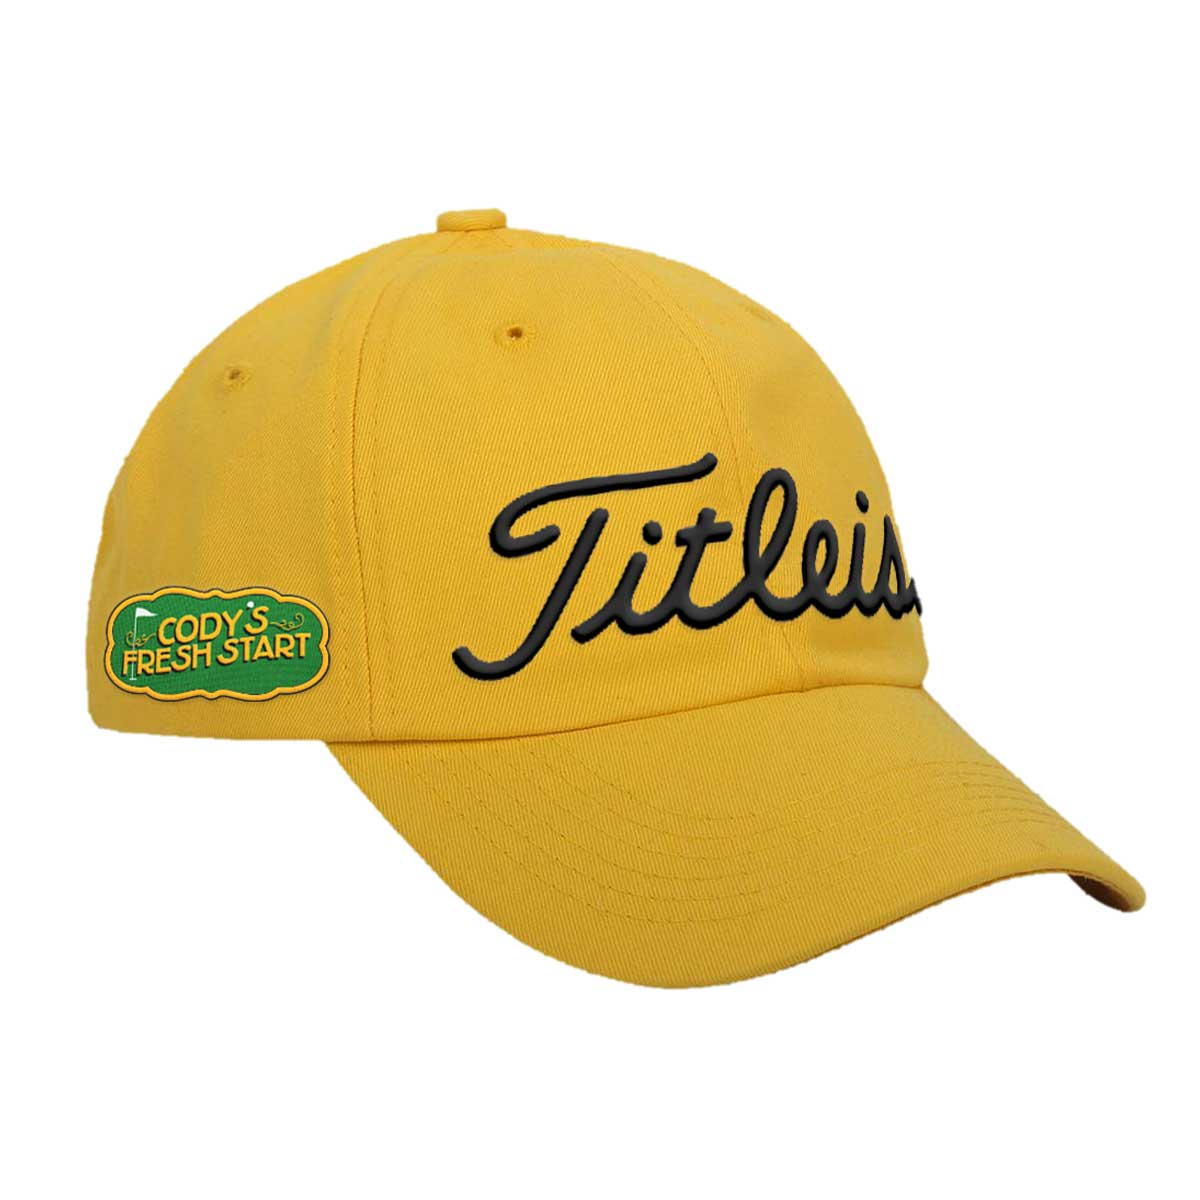 HAT - Titleist Golf Hat in Yellow – Cody s Fresh Start Charity Works 2f25a01f041